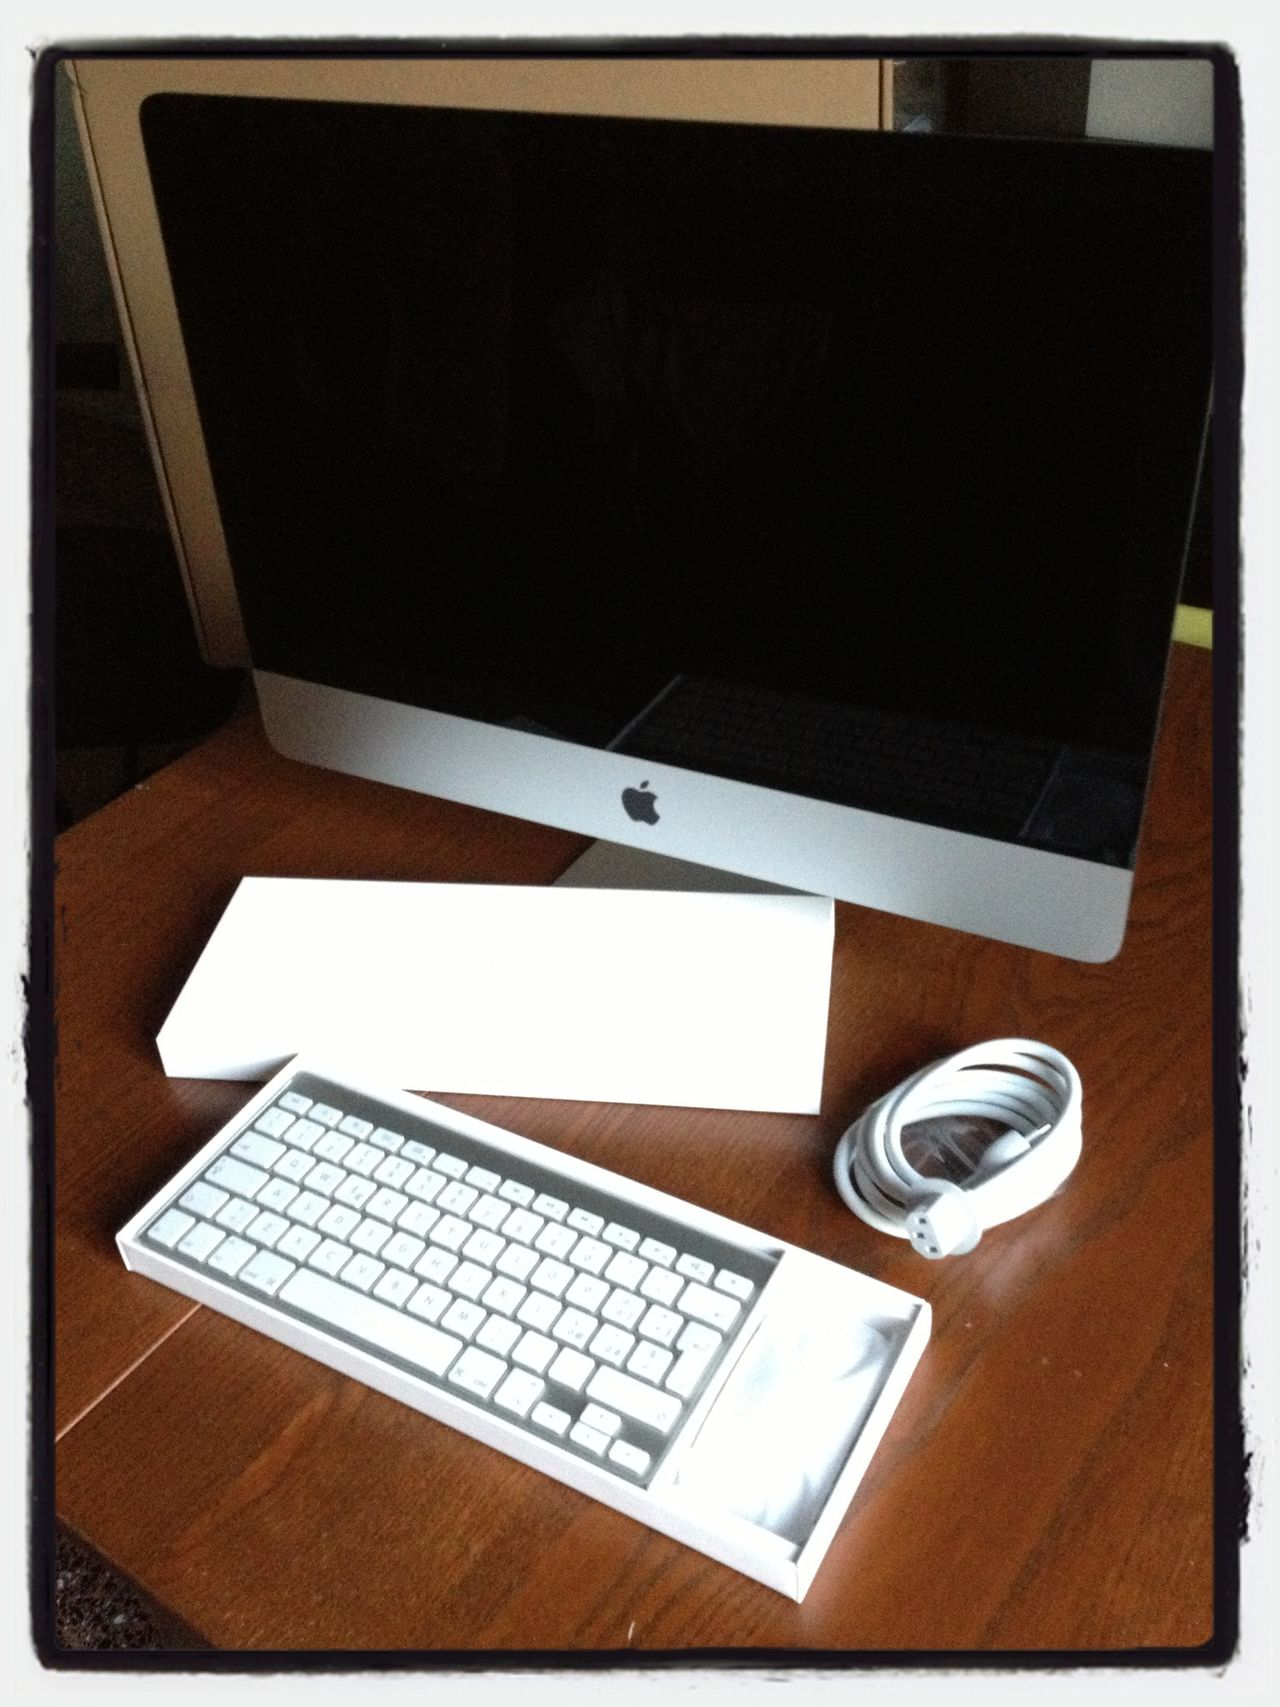 This is all you get (when you buy a new Imac 2013)